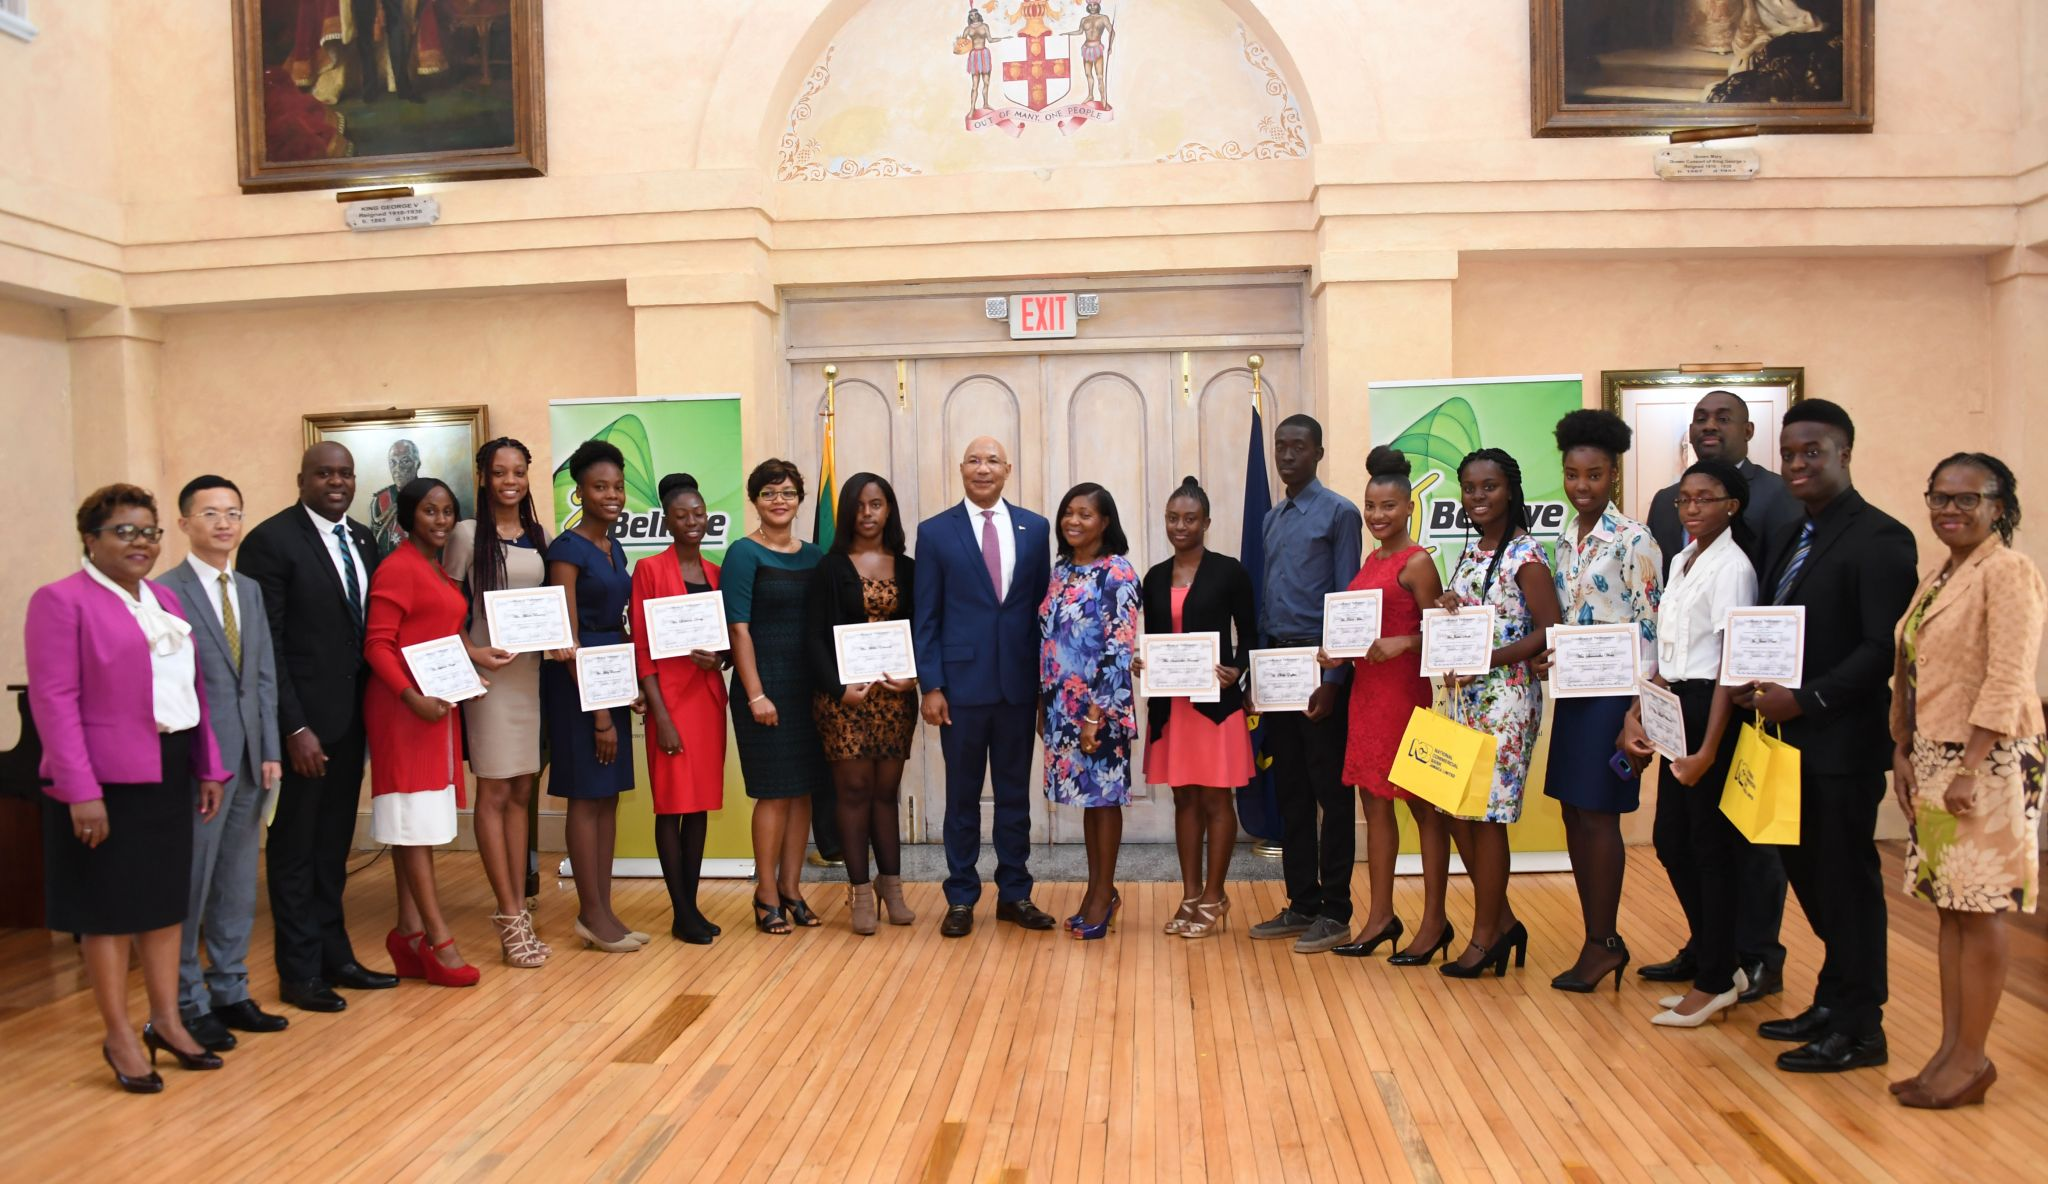 Twelve Students Awarded Scholarships And Grants Under I Believe Summer Of Service Programme